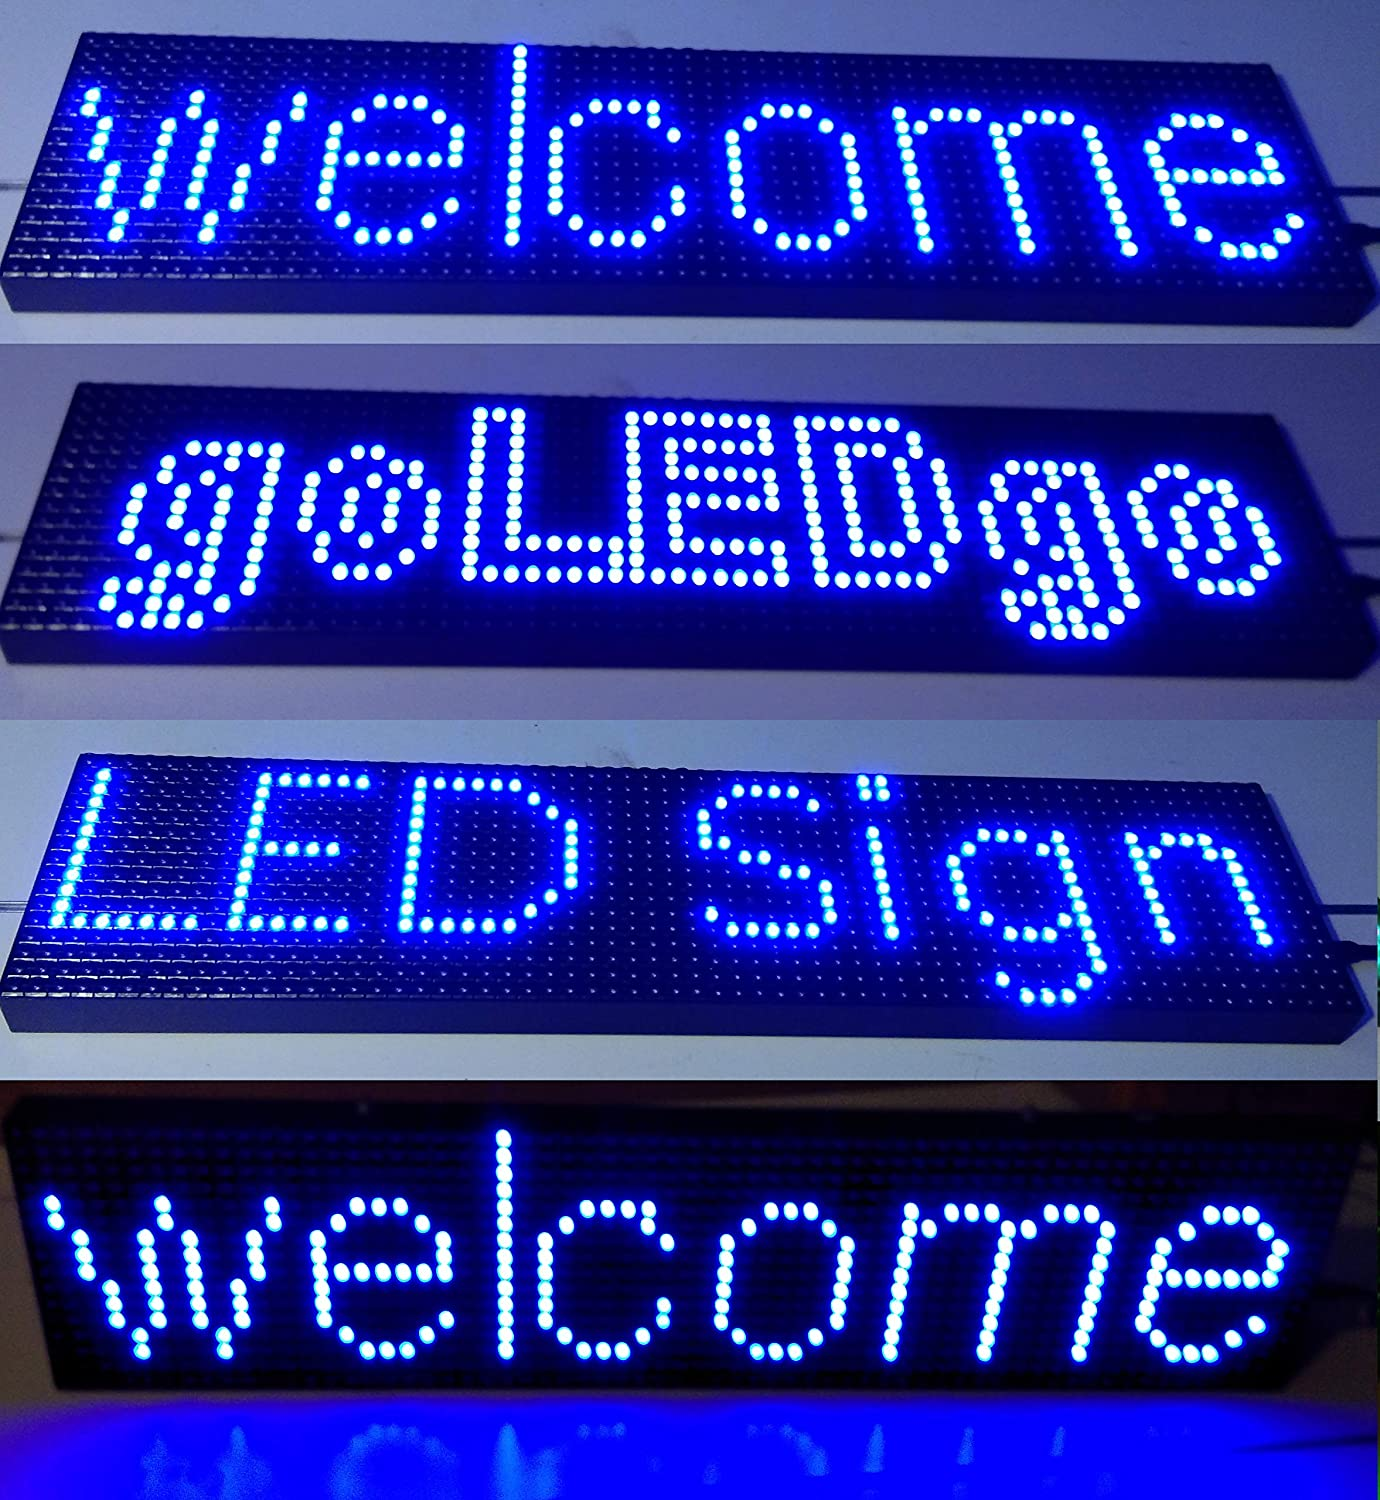 """goLEDgo 6.5"""" x 25.3"""" Blue Programmable Scrolling LED Sign - Self-Outdoor UVproof LED Display Metal Case (6.5""""x25.5""""x1.2"""", Blue)"""